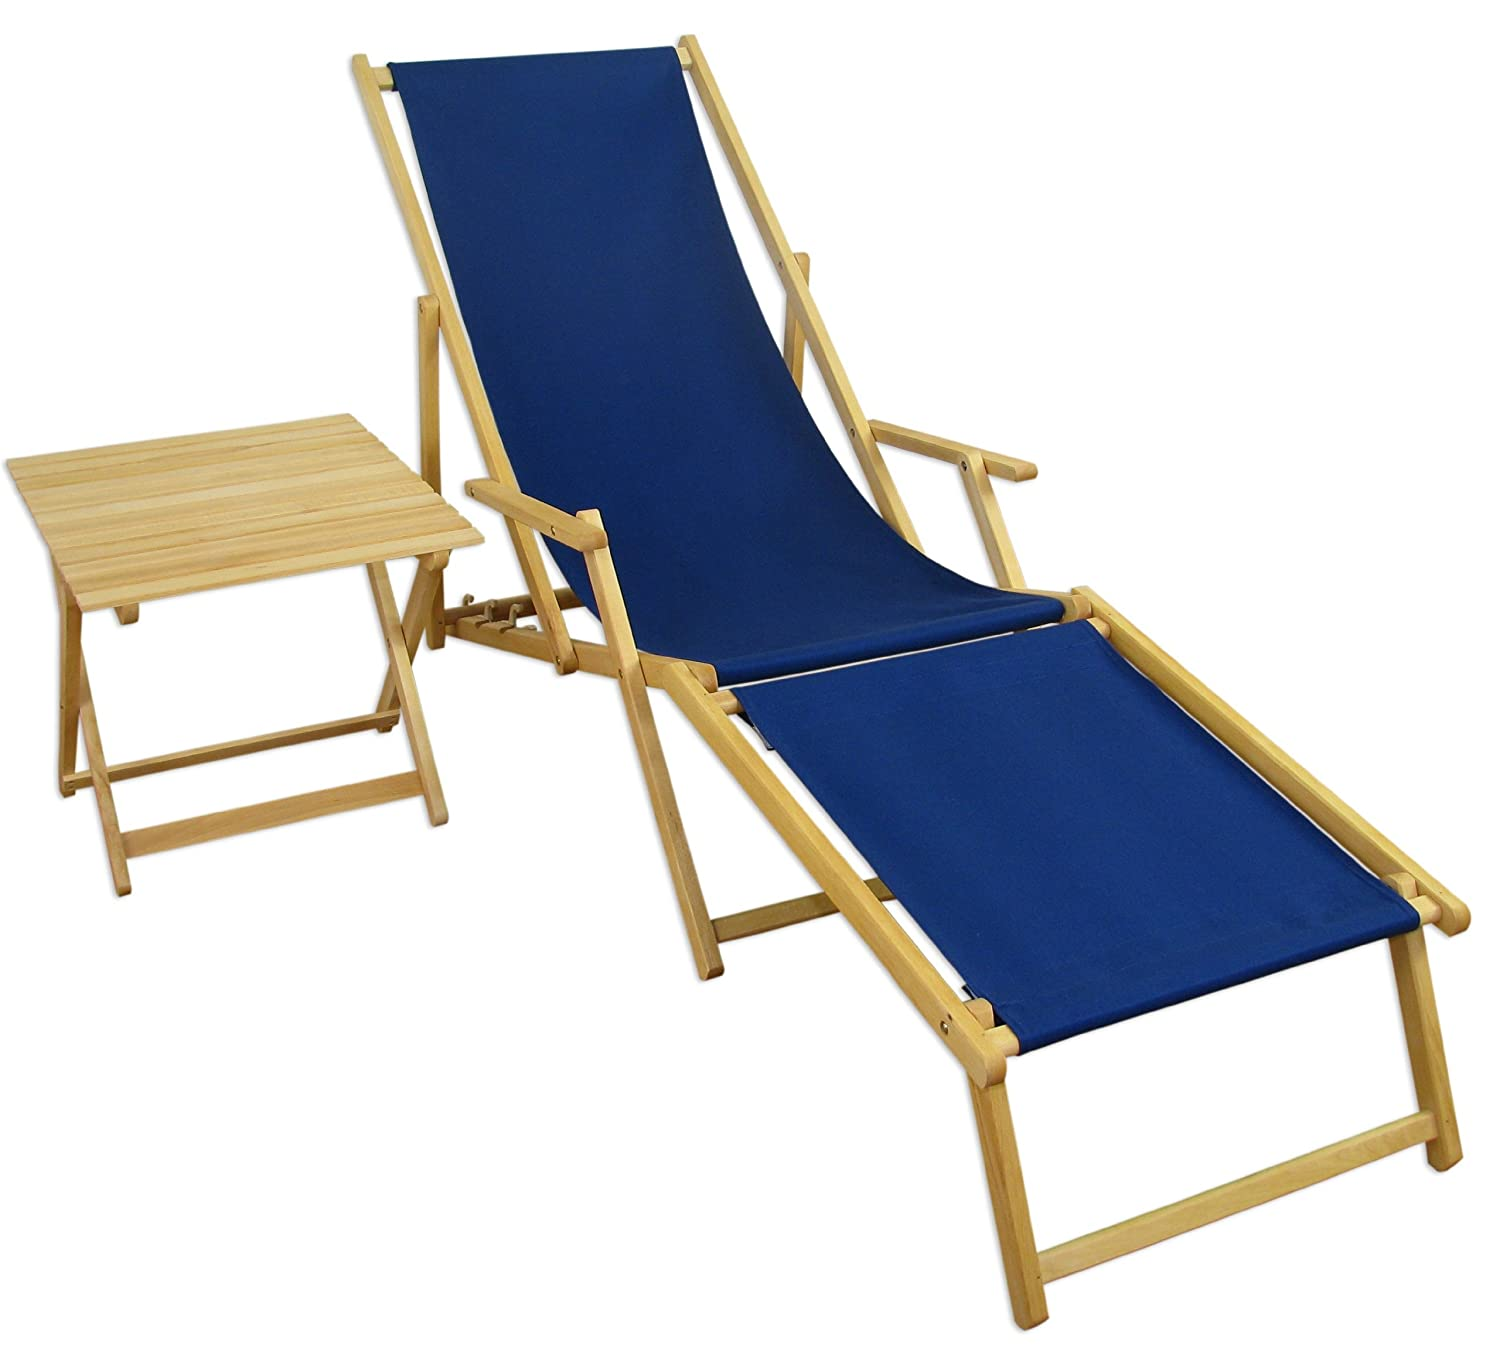 sonnenliege gartenliege deckchair saunaliege inkl abnehmbarem fu teil g nstig kaufen. Black Bedroom Furniture Sets. Home Design Ideas